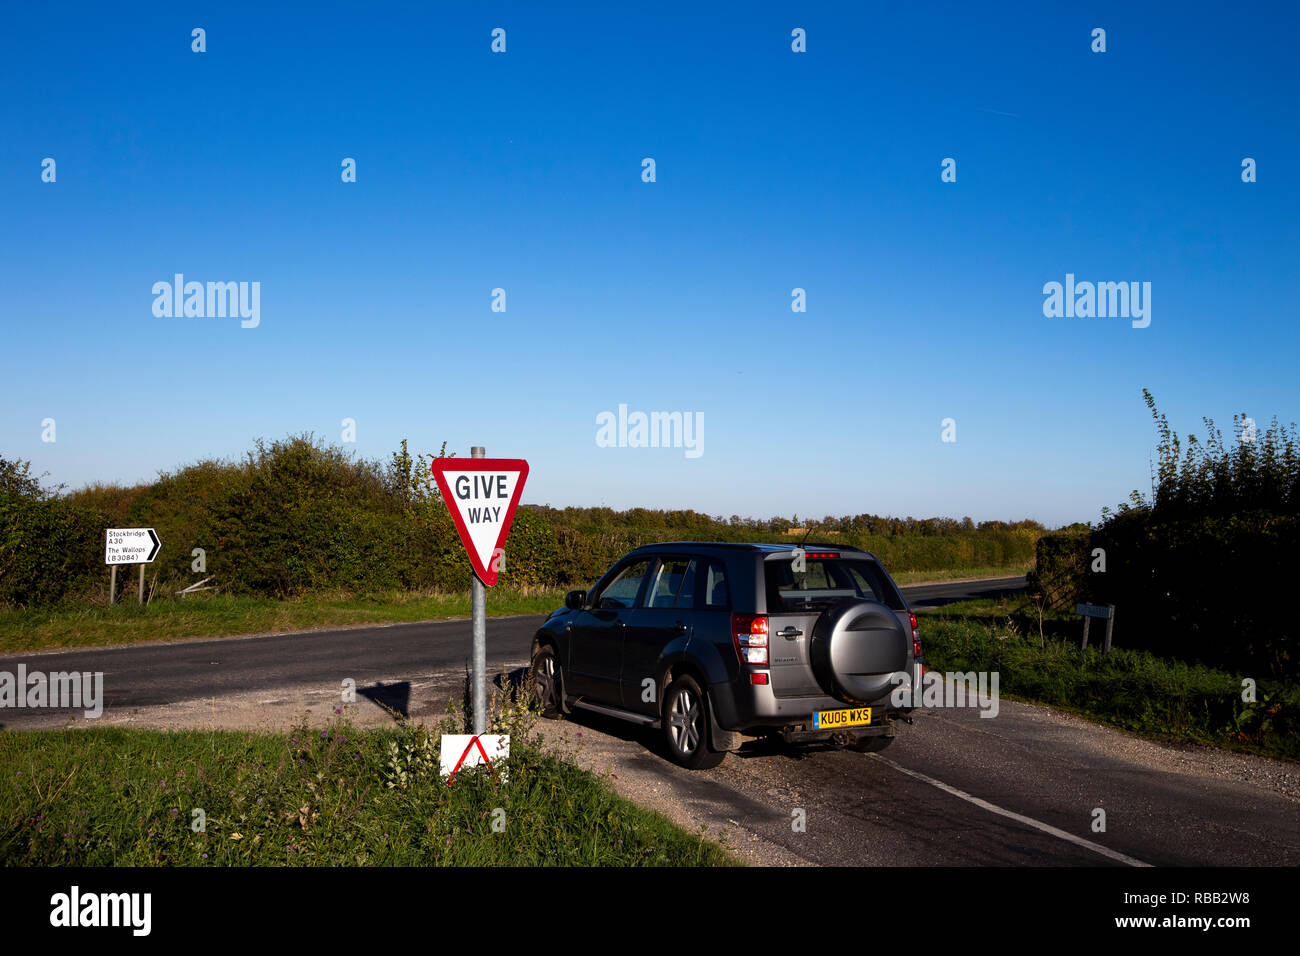 give way road sign on country lane joining main highway junction in rural Hampshire - Stock Image